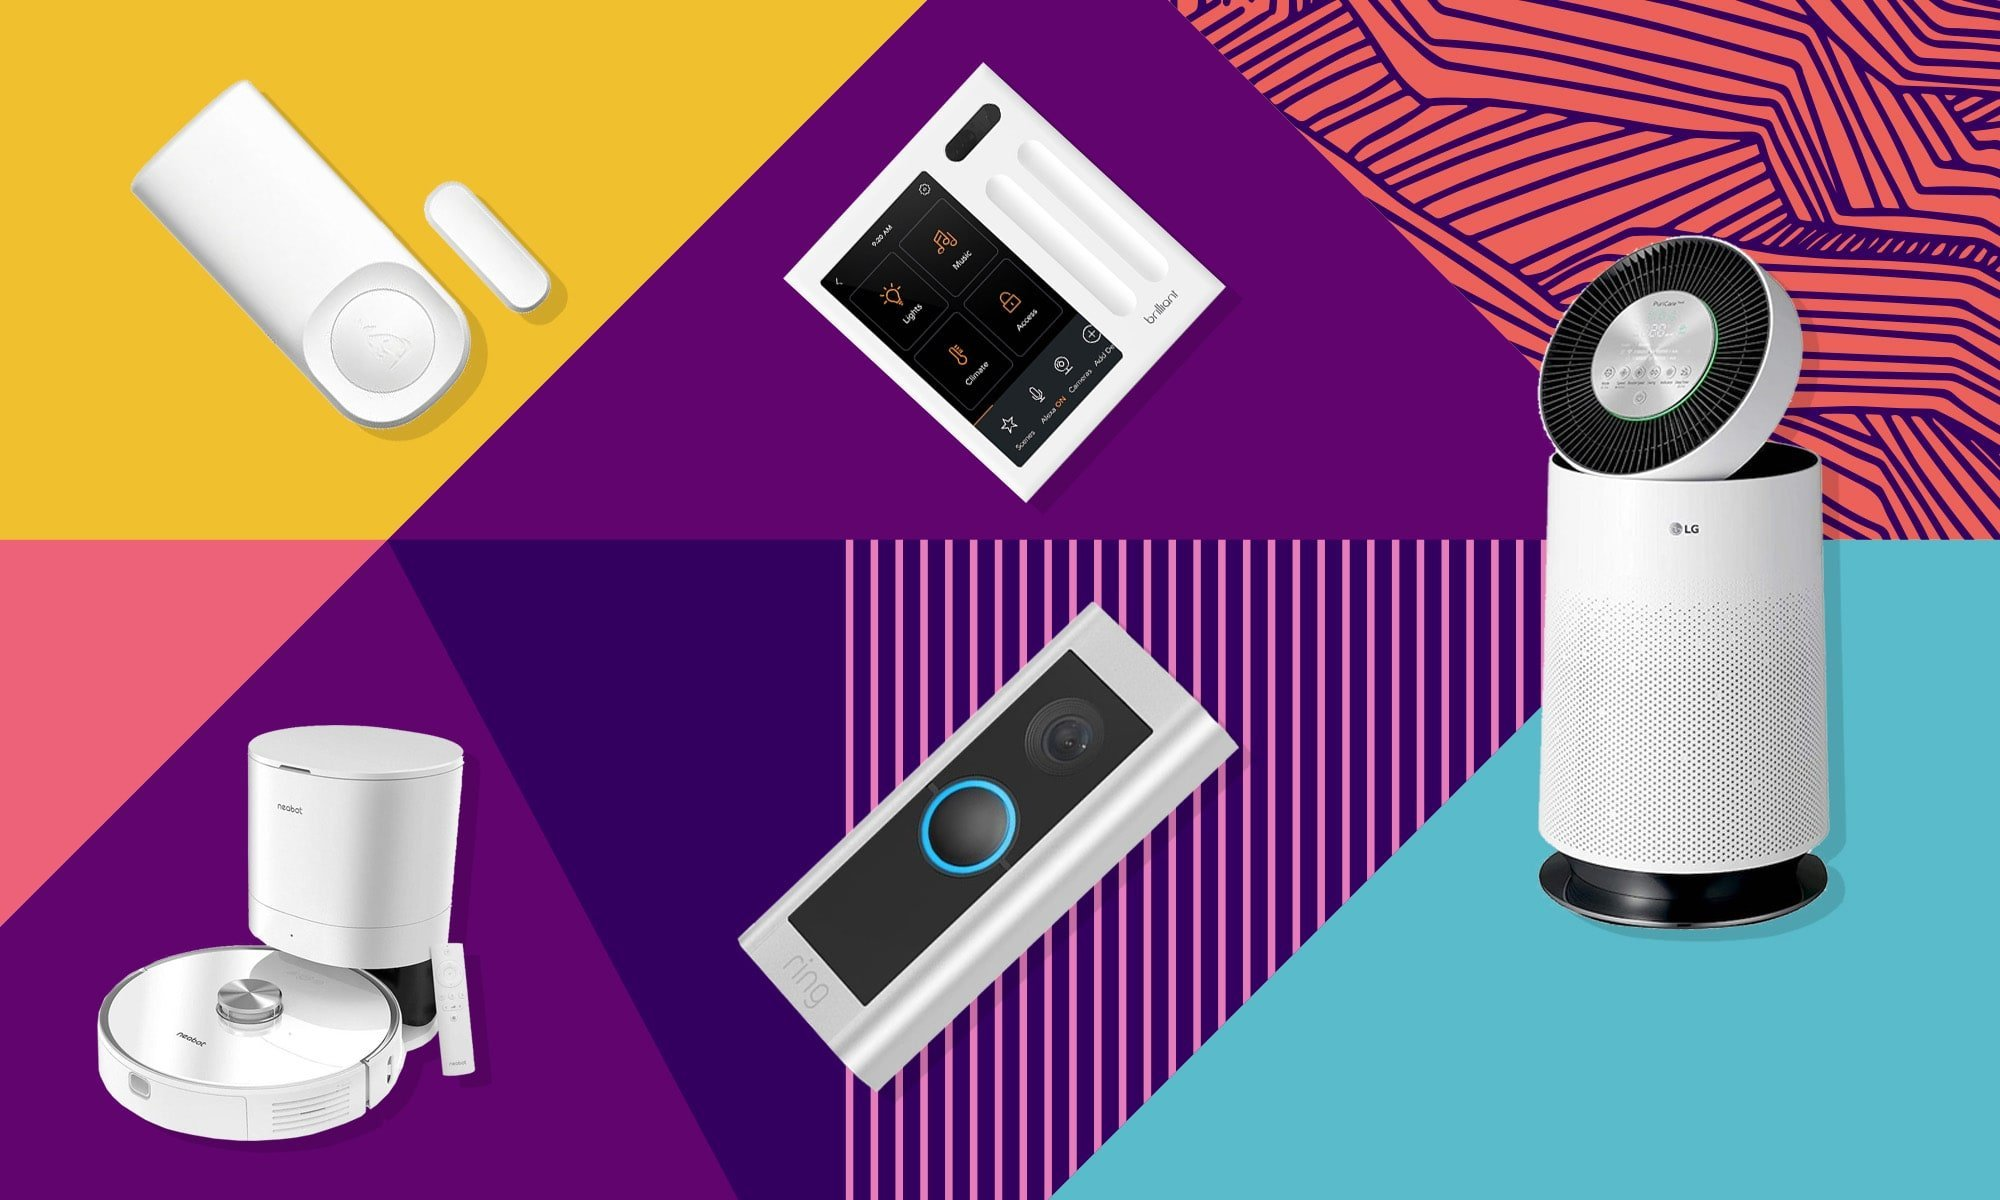 The ultimate buyer's guide for smart home and IoT gadgets